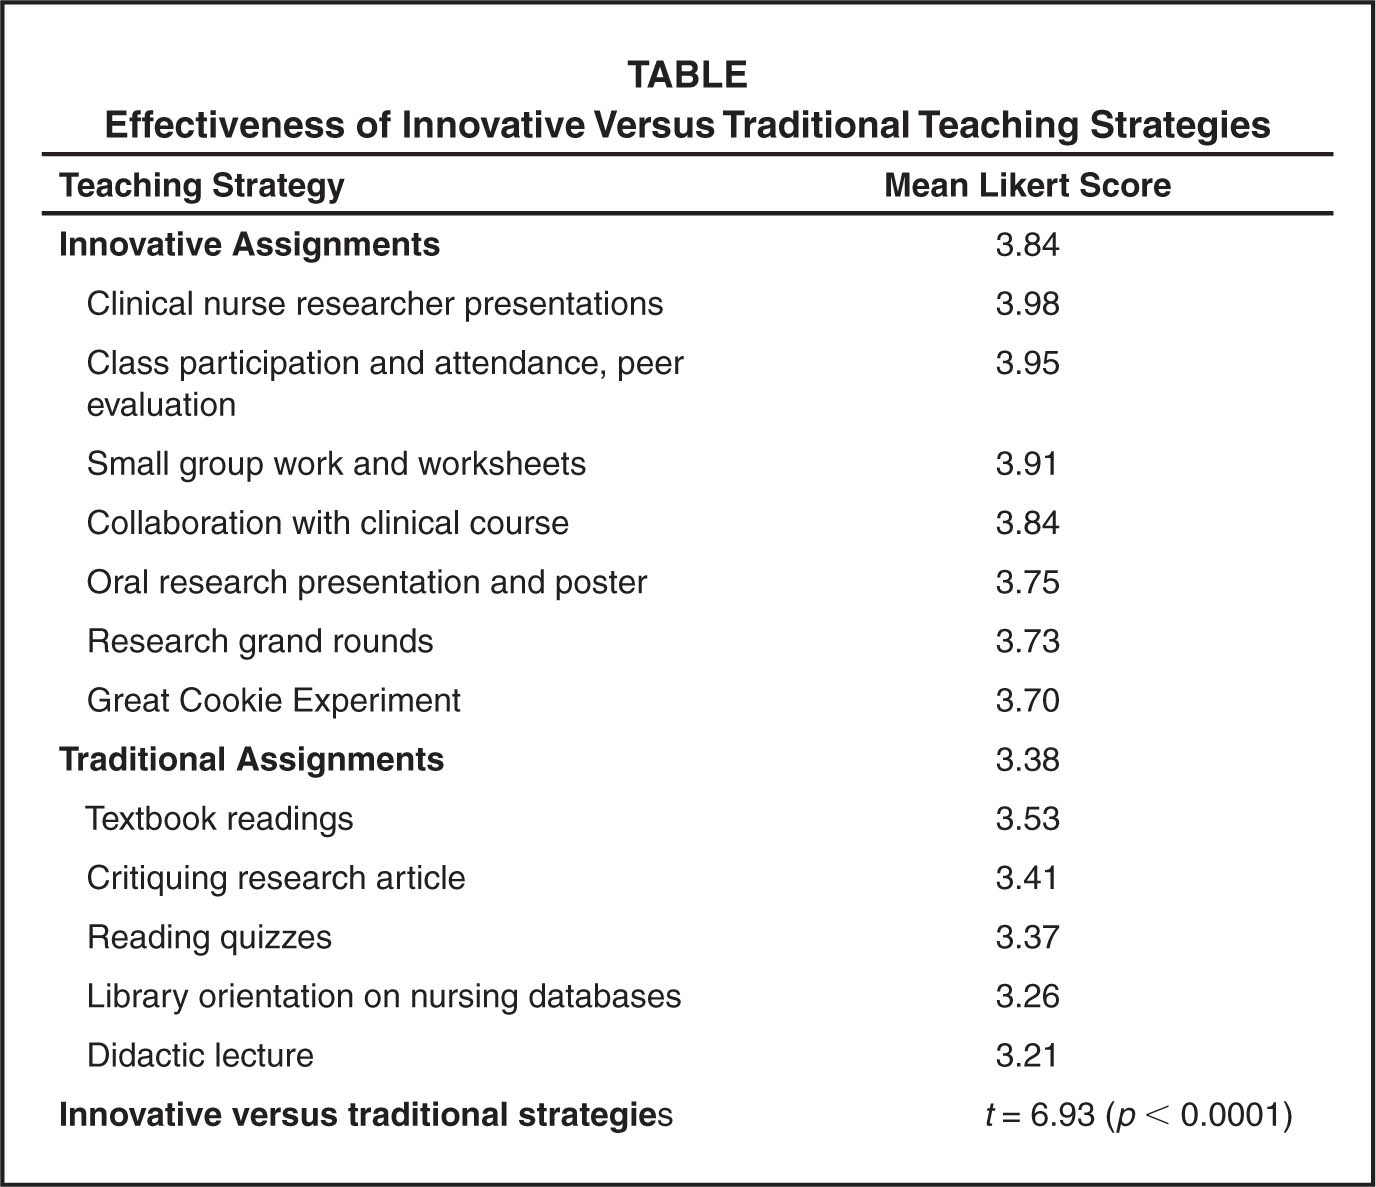 Effectiveness of Innovative Versus Traditional Teaching Strategies